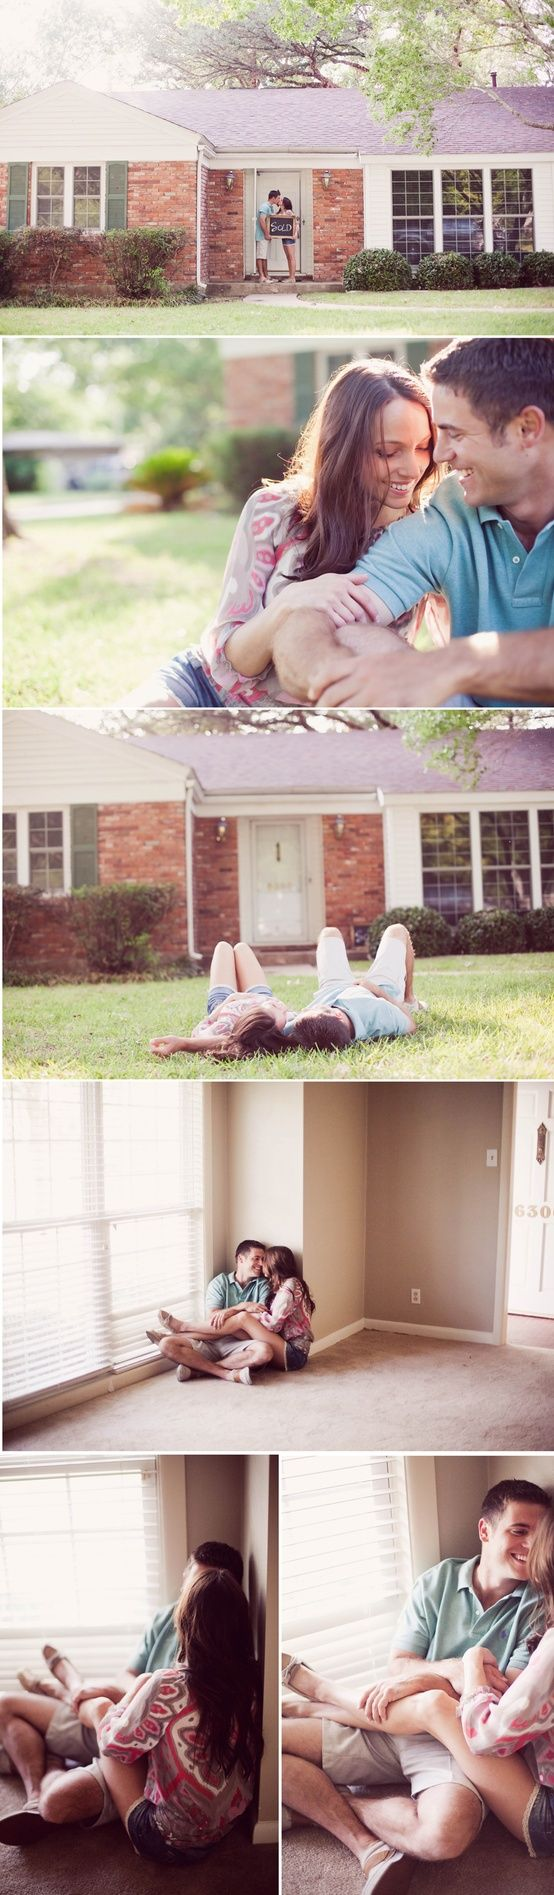 Great idea for having a session with a couple celebrating their new home. Caroline Joy|Discovered « Evoking You|Inspiration for your photography